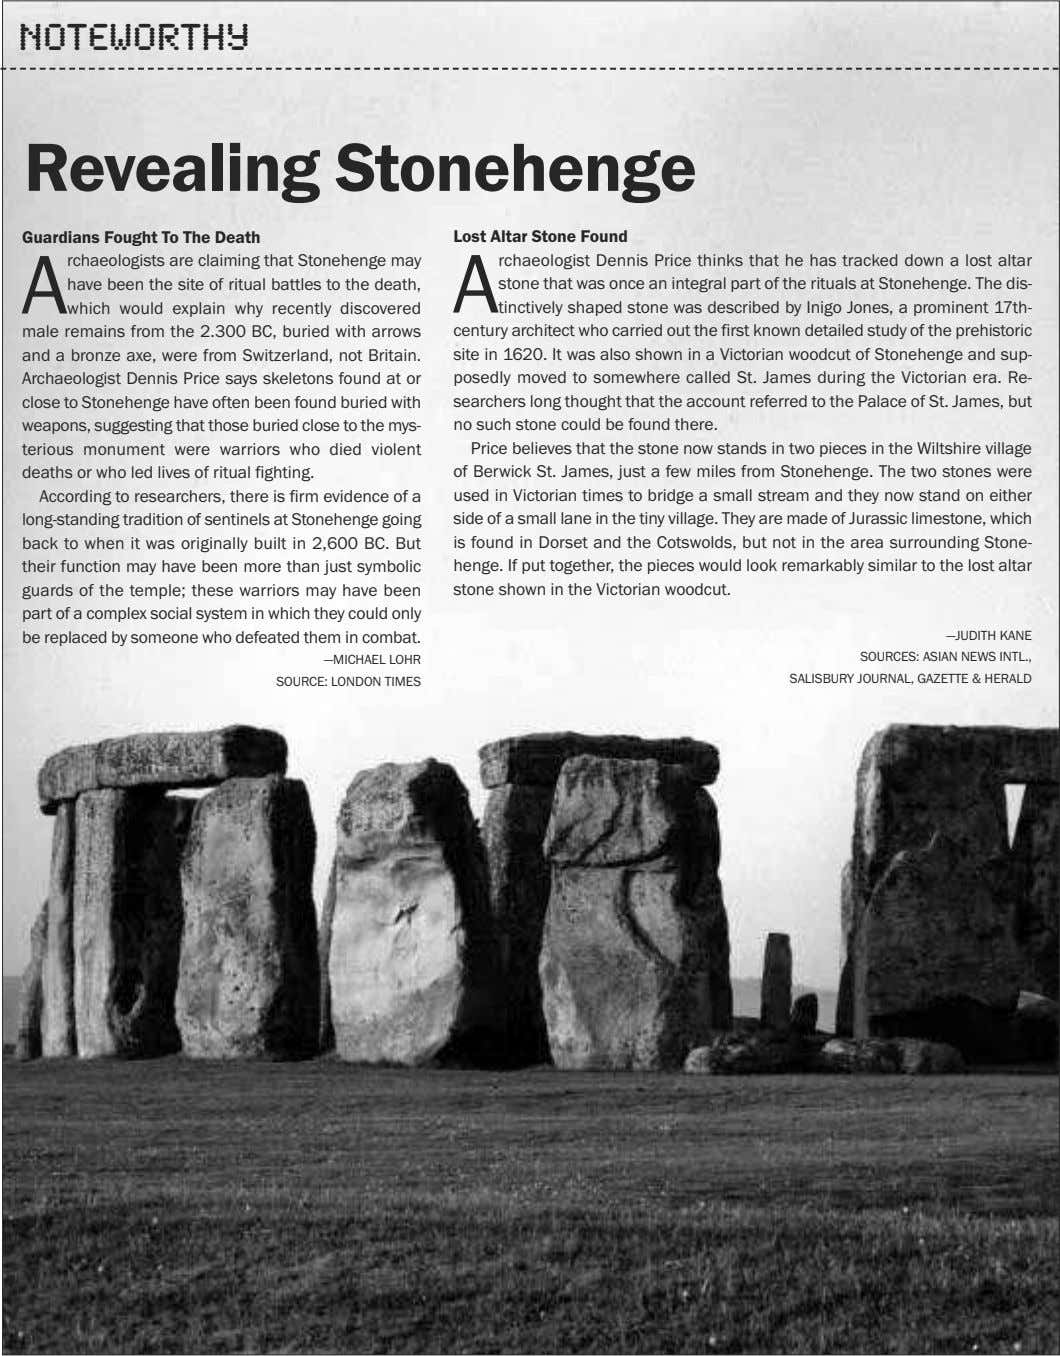 Noteworthy Revealing Stonehenge Guardians Fought To The Death Lost Altar Stone Found A rchaeologists are